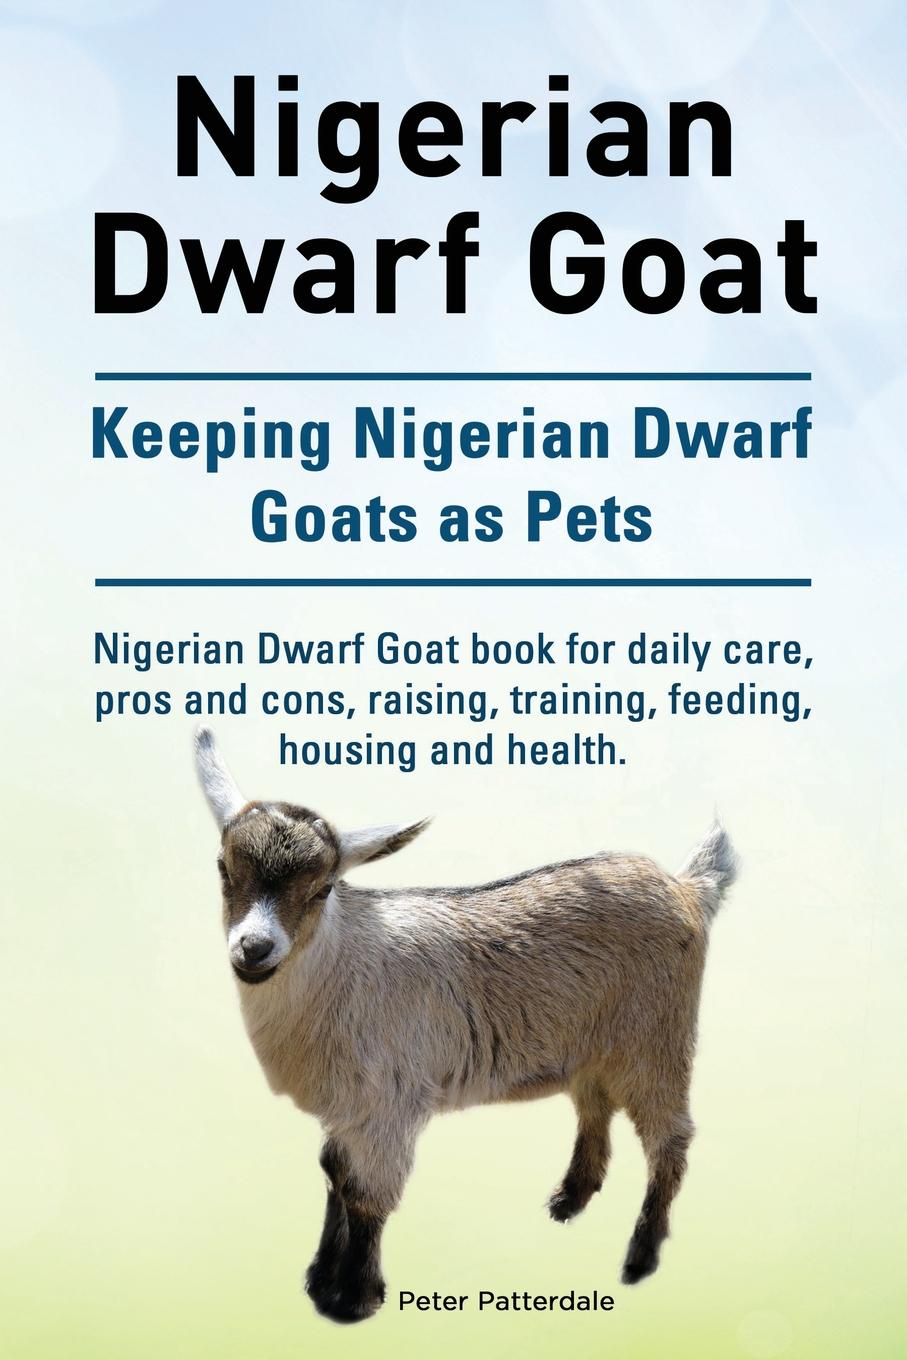 Peter Patterdale Nigerian Dwarf Goat. Keeping Nigerian Dwarf Goats as Pets. Nigerian Dwarf Goat book for daily care, pros and cons, raising, training, feeding, housing and health. the mountain goats tallahasse